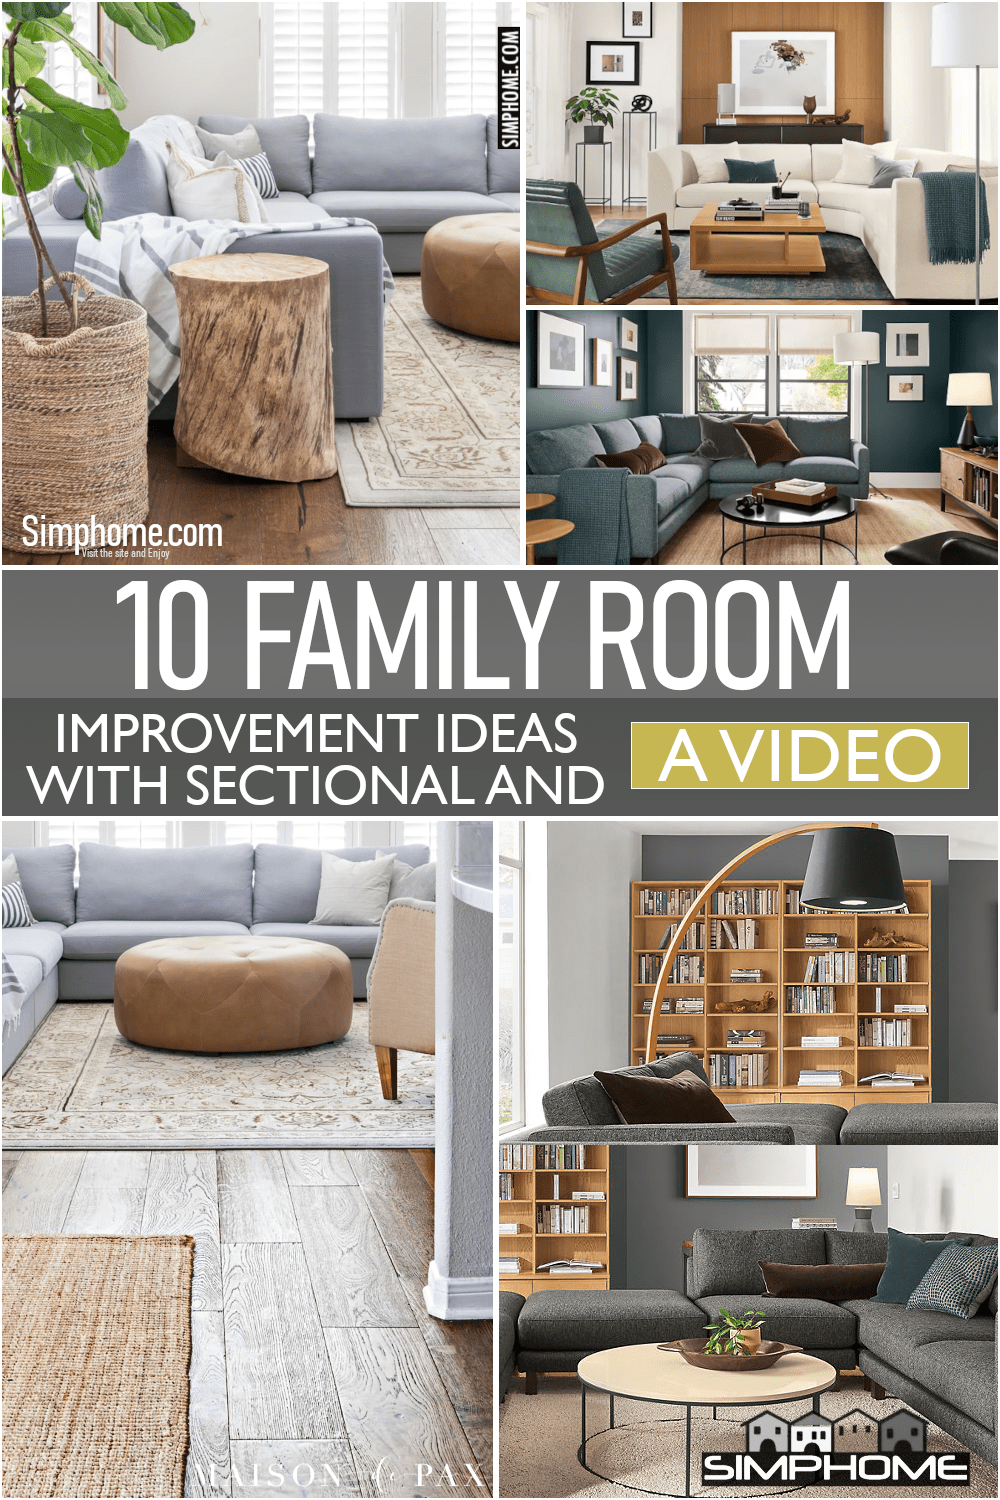 10 Family Room Sectional Ideas via Simphome.comFeatured